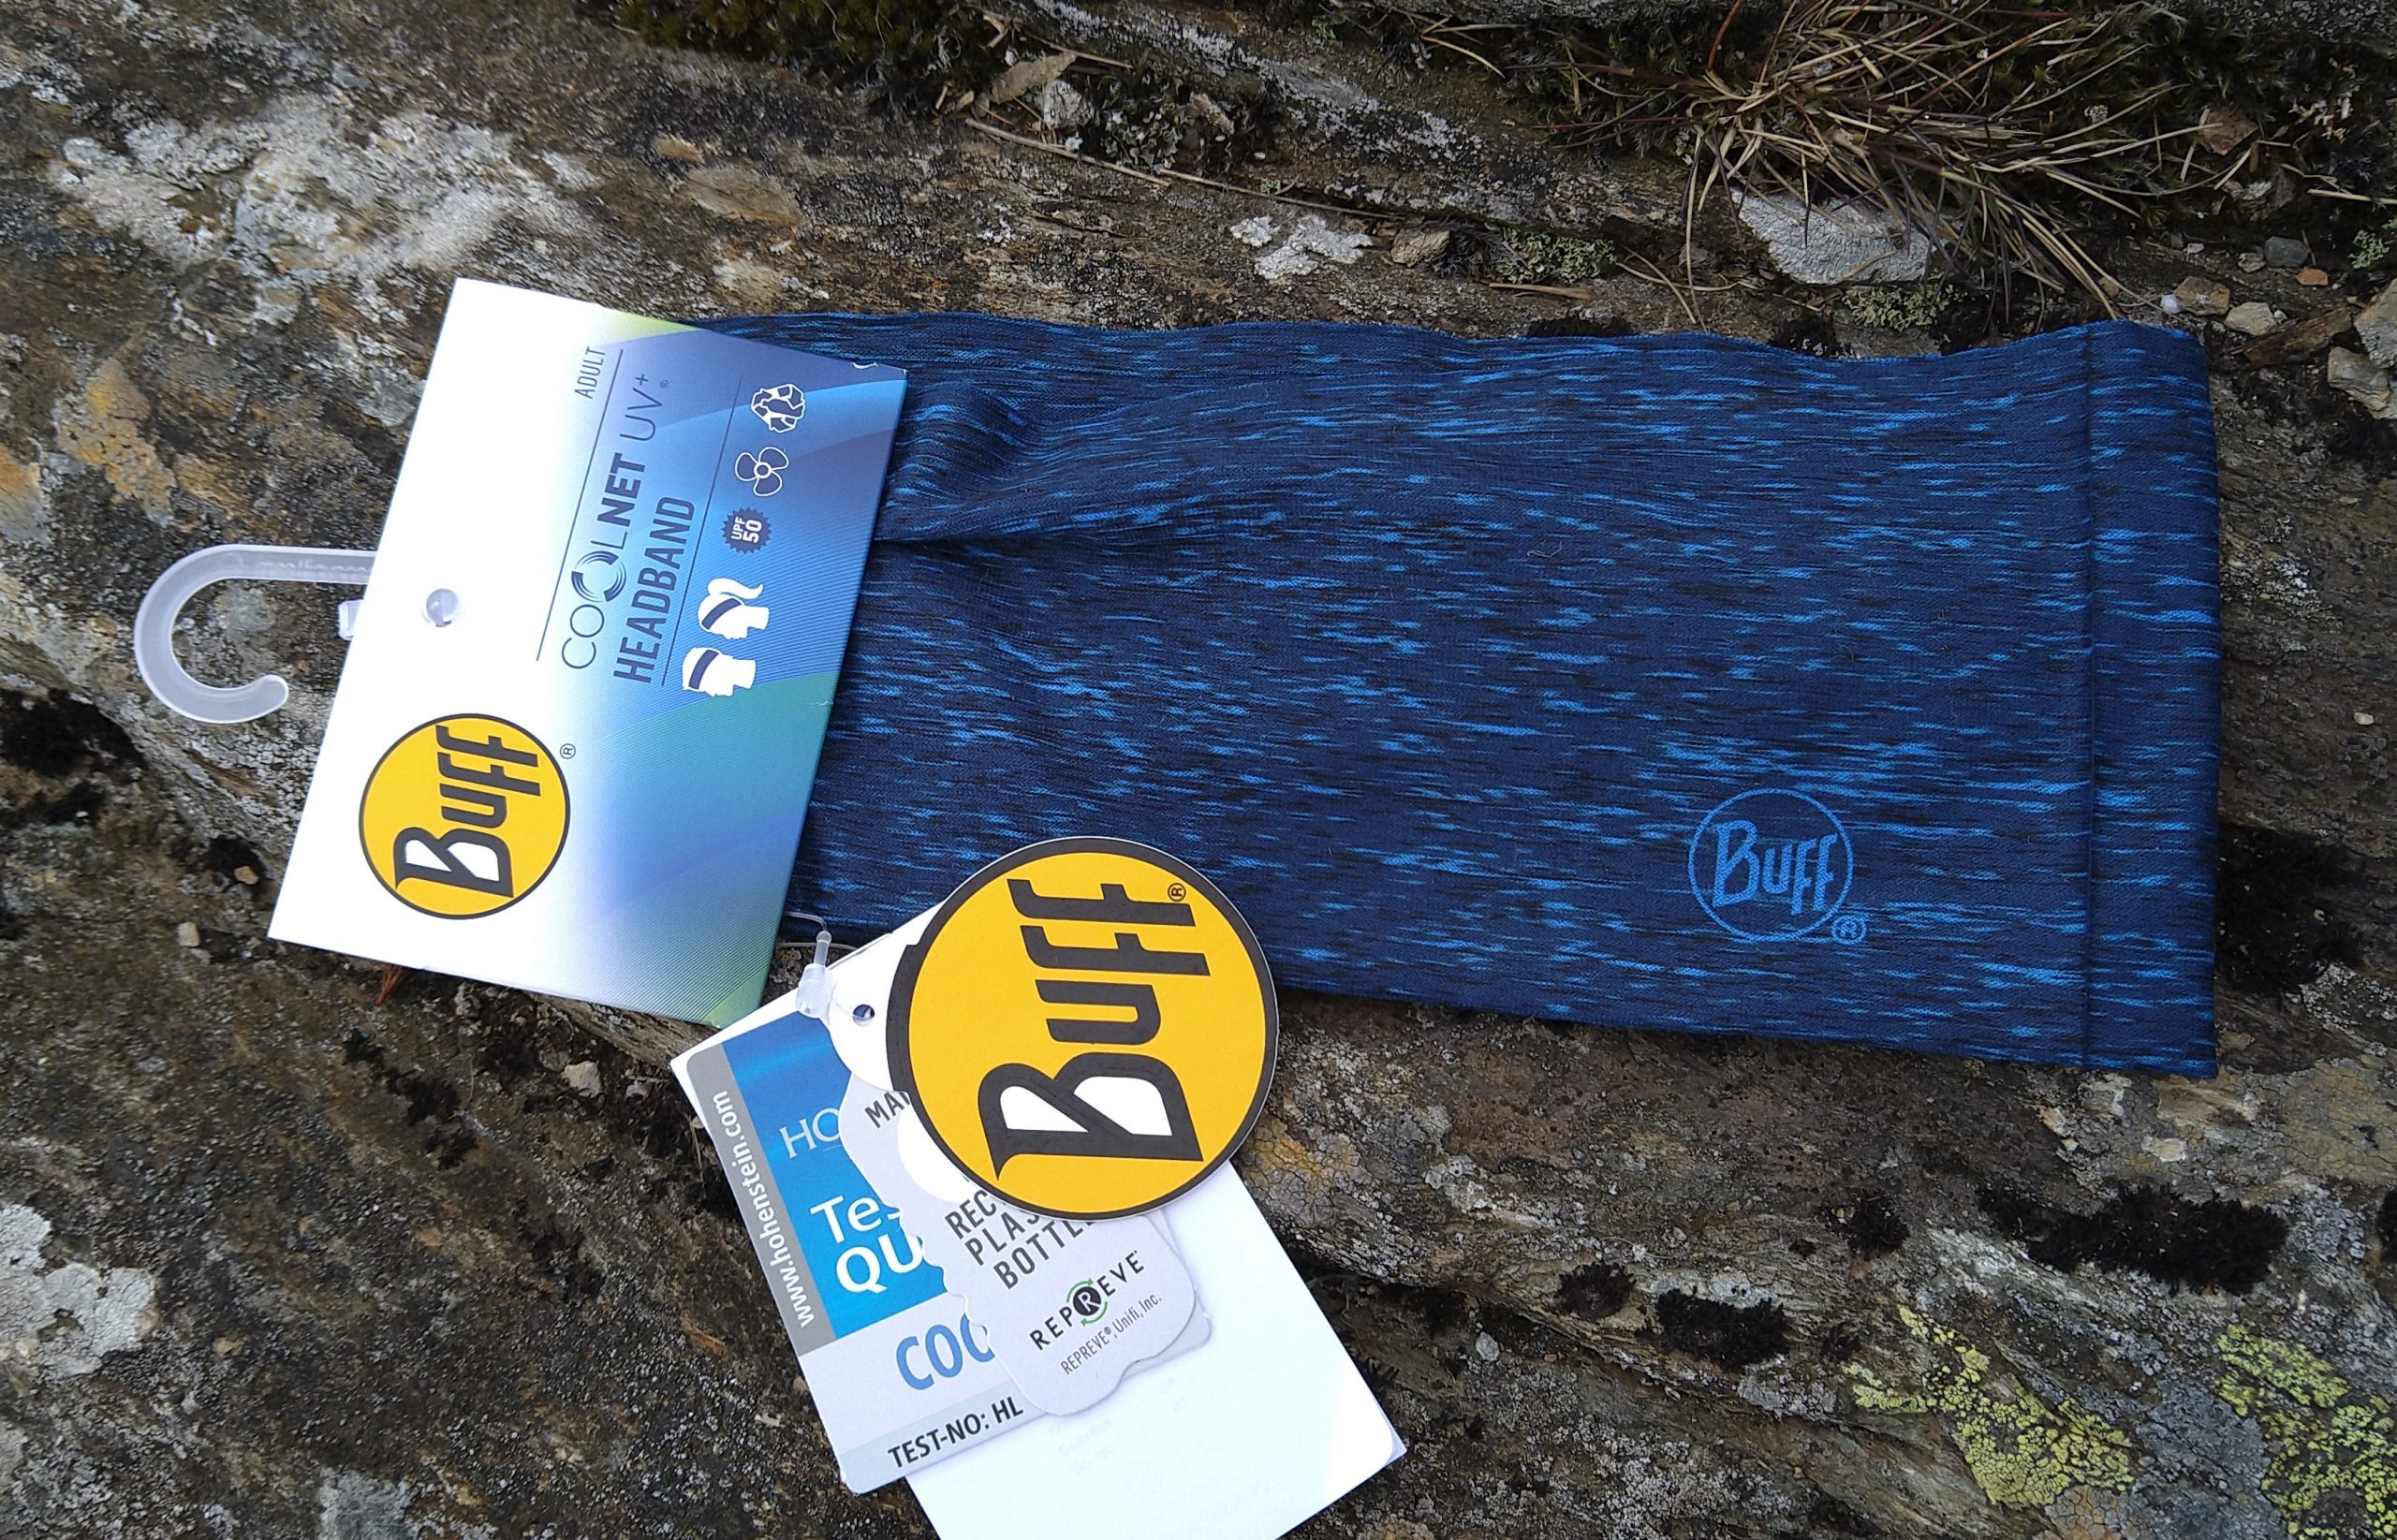 Check out the new CoolNet UV+ headband from Buff